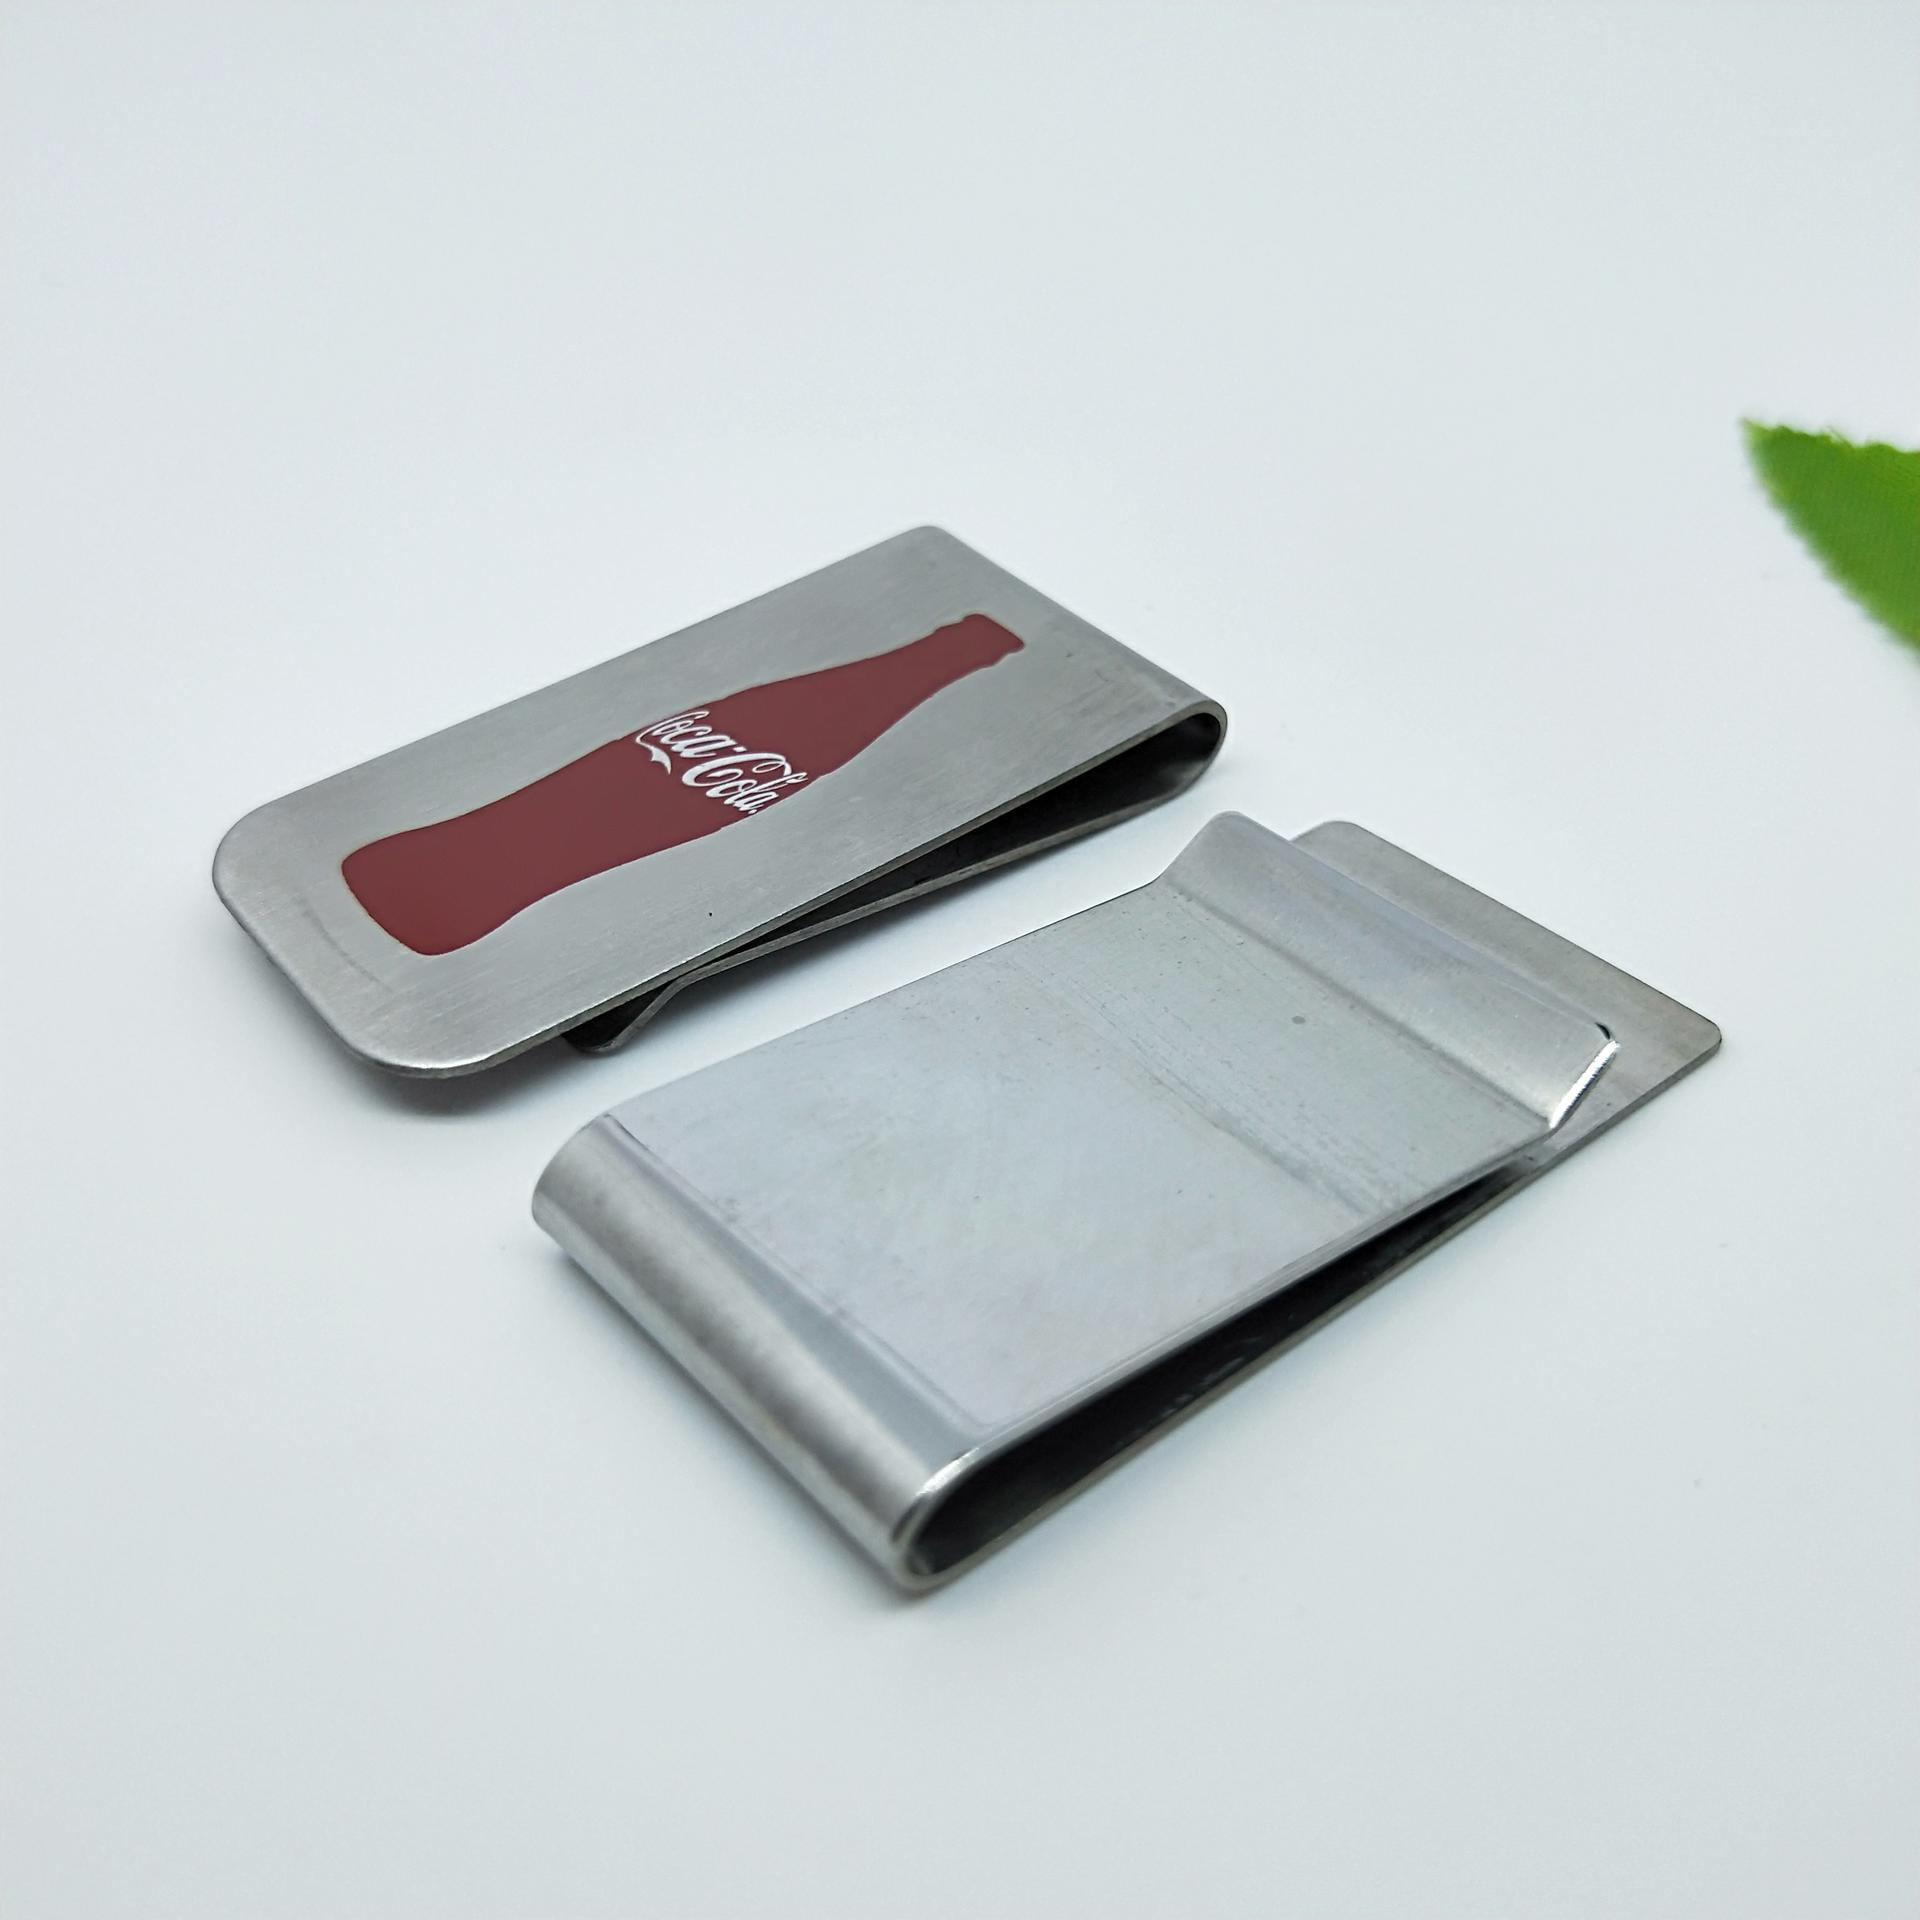 Dongguan 2021 new style mens popular metal 304 stainless steel fold pocket blank money clip leather